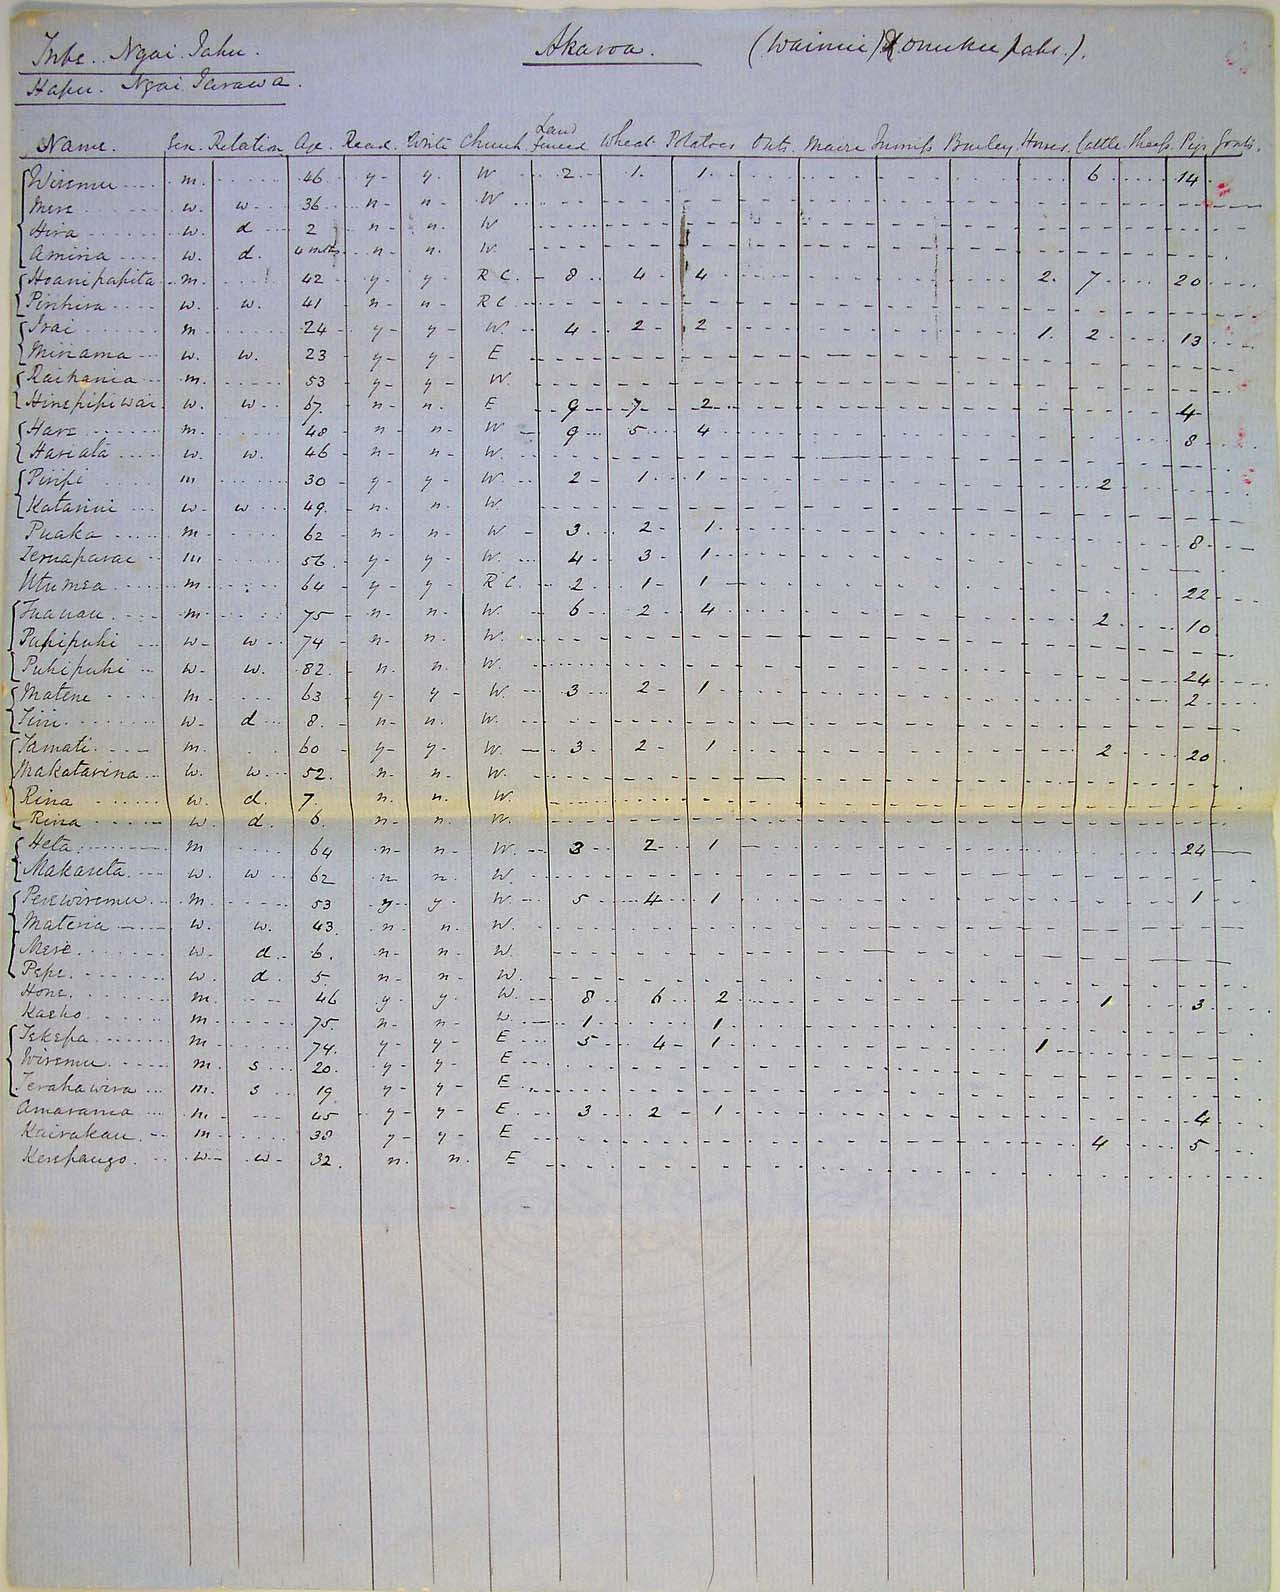 Population at Akaroa [Wainui and Onuku pahs (sic) - see also item 38] - Page 2